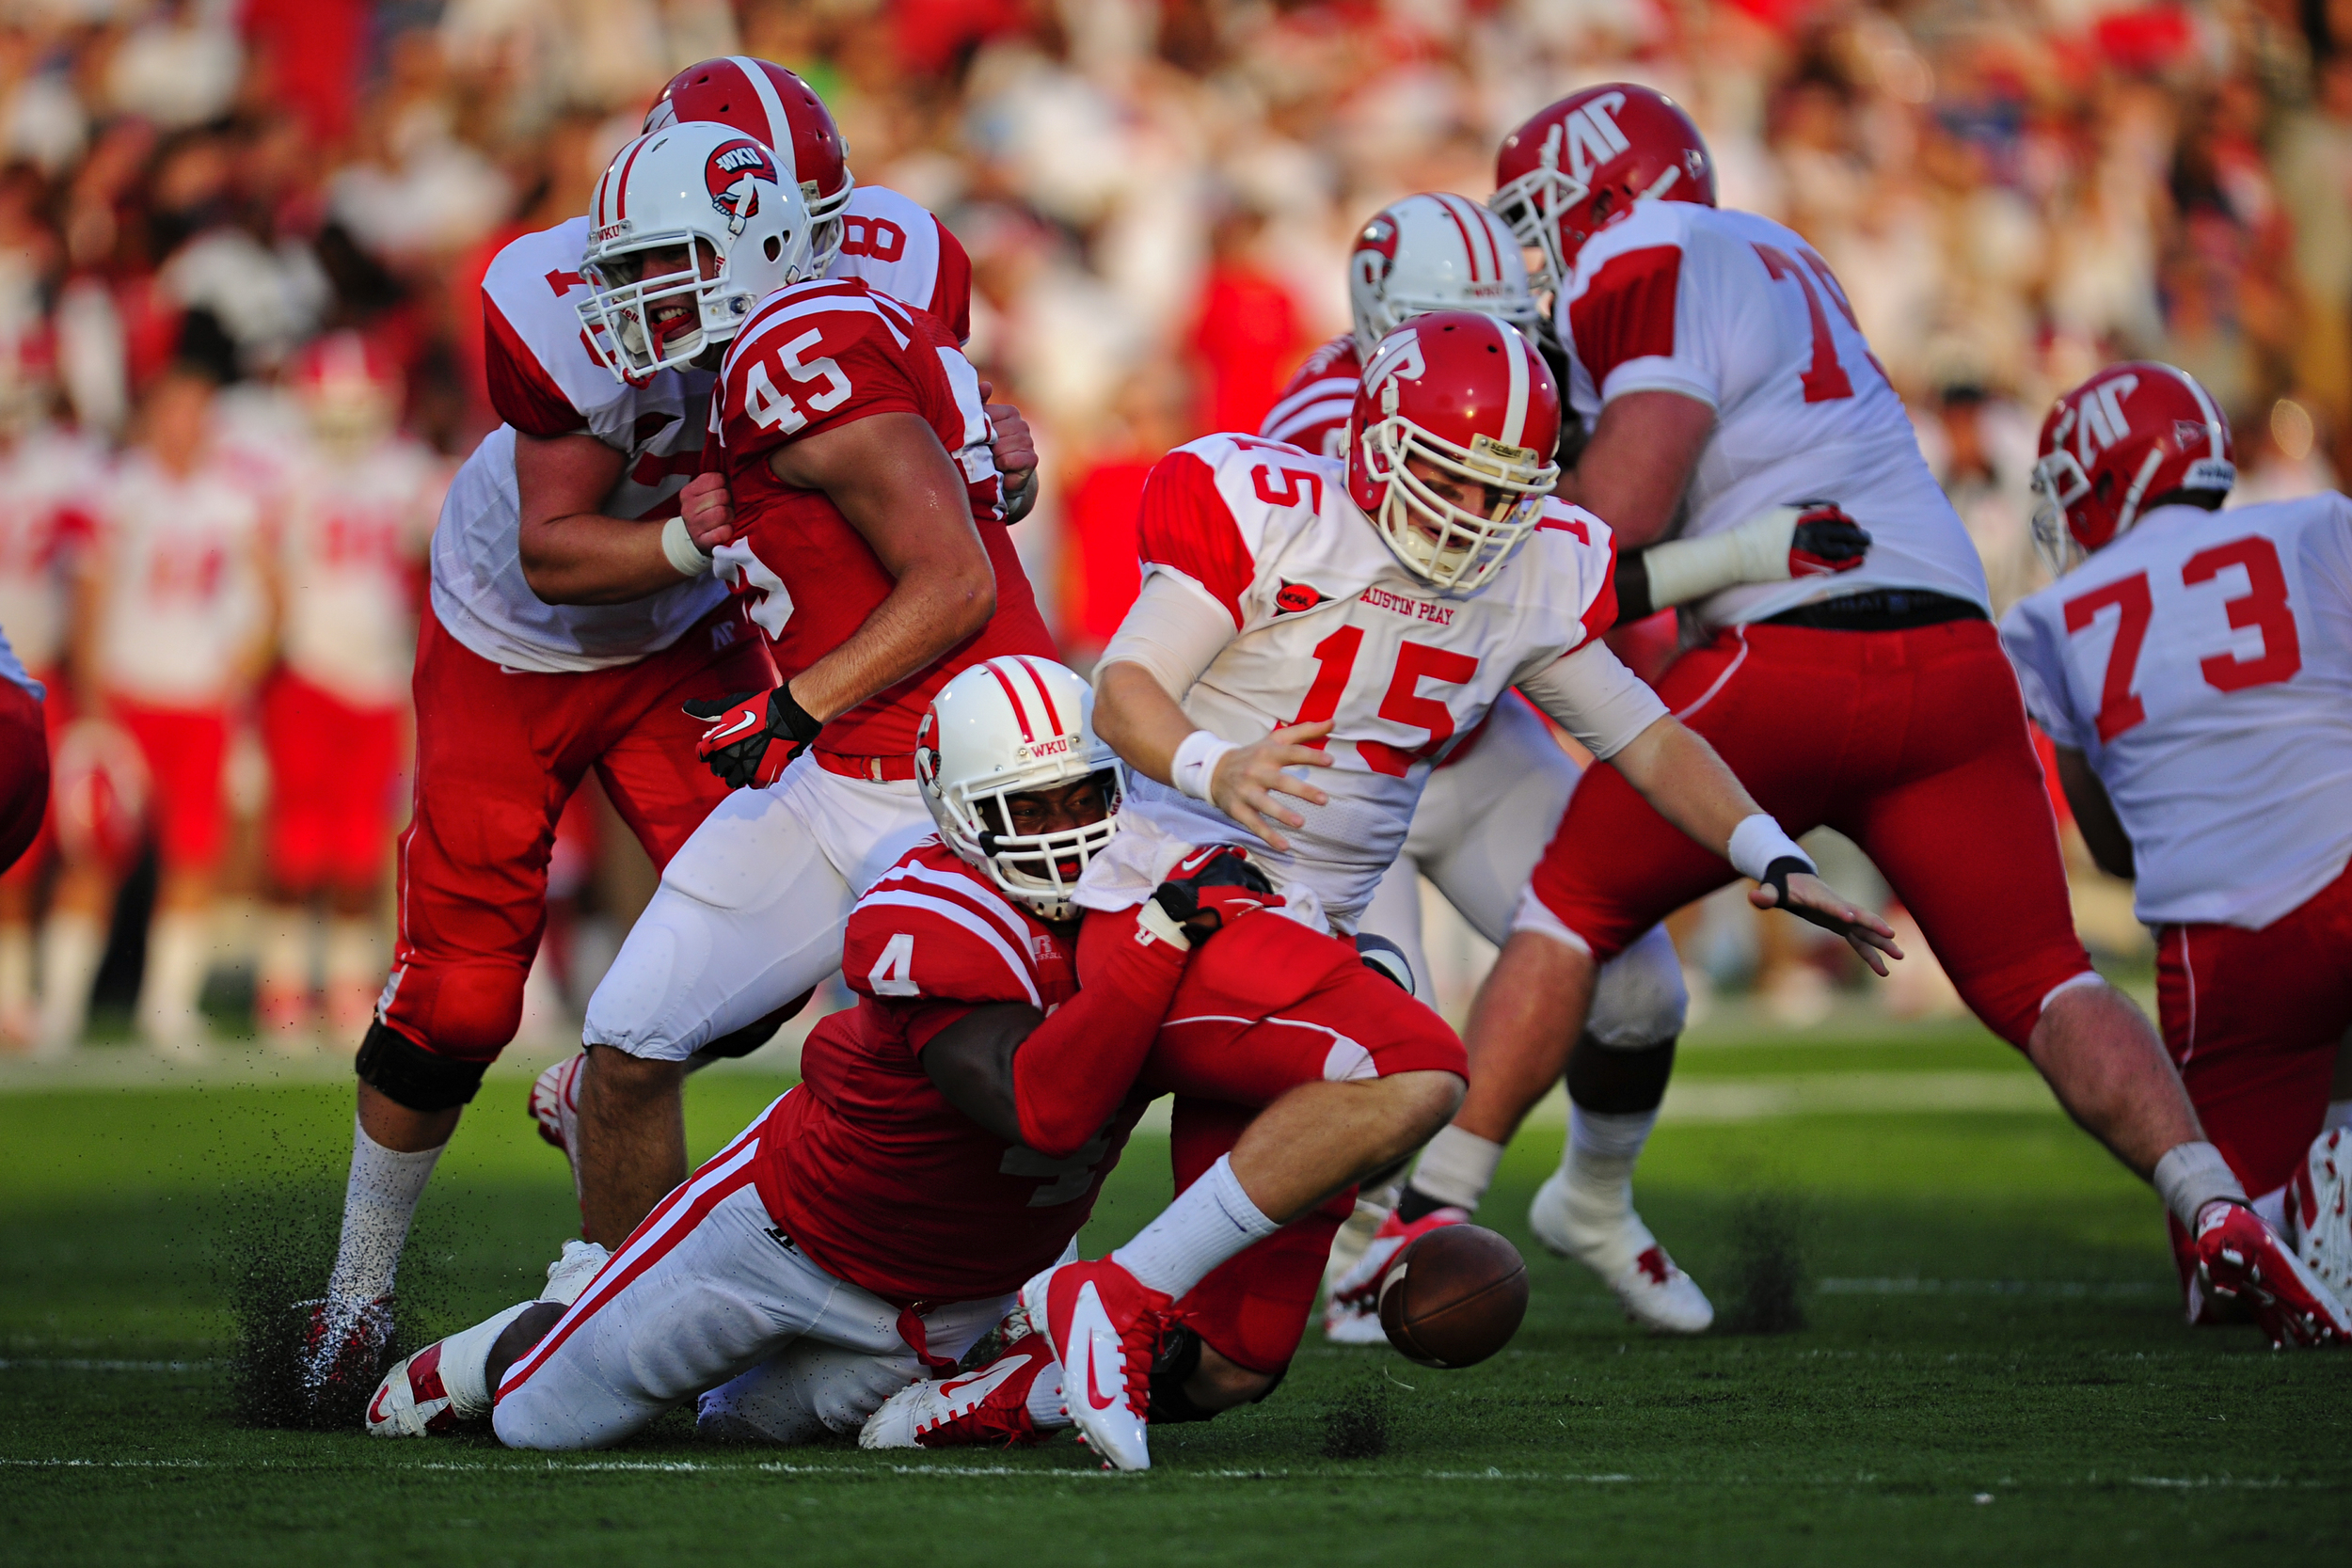 Austin Peay's senior quarter back Jake Ryan fumbles and is tackled by WKU's junior line backer Andrew Jackson during the WKU's first home football game of the 2012 season against Austin Peay Governors at L.T. Smith Stadium. WKU won 49-10.